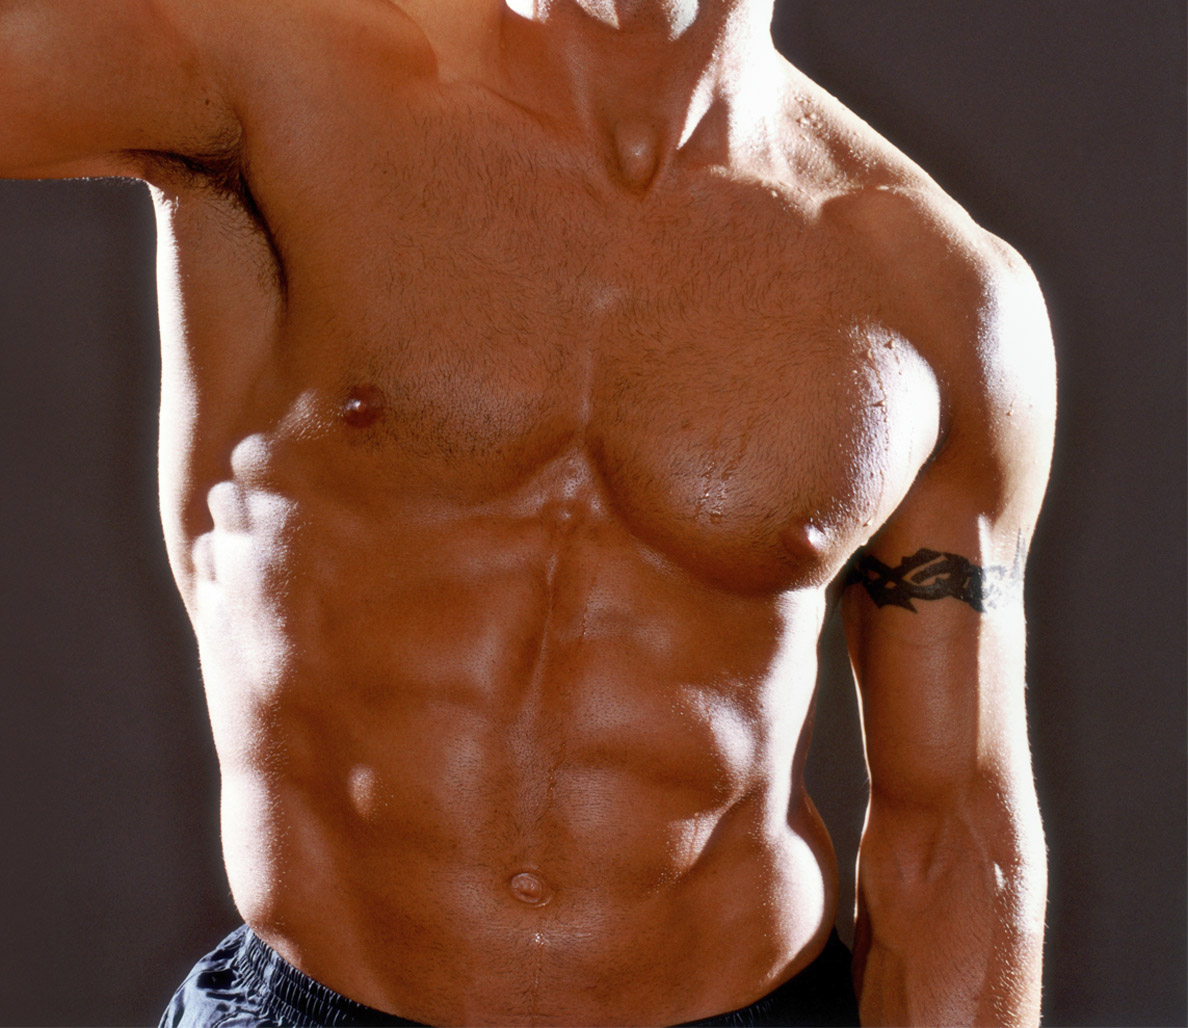 Get Abs Without Working Out - Keep Six-Pack Abs When Injured